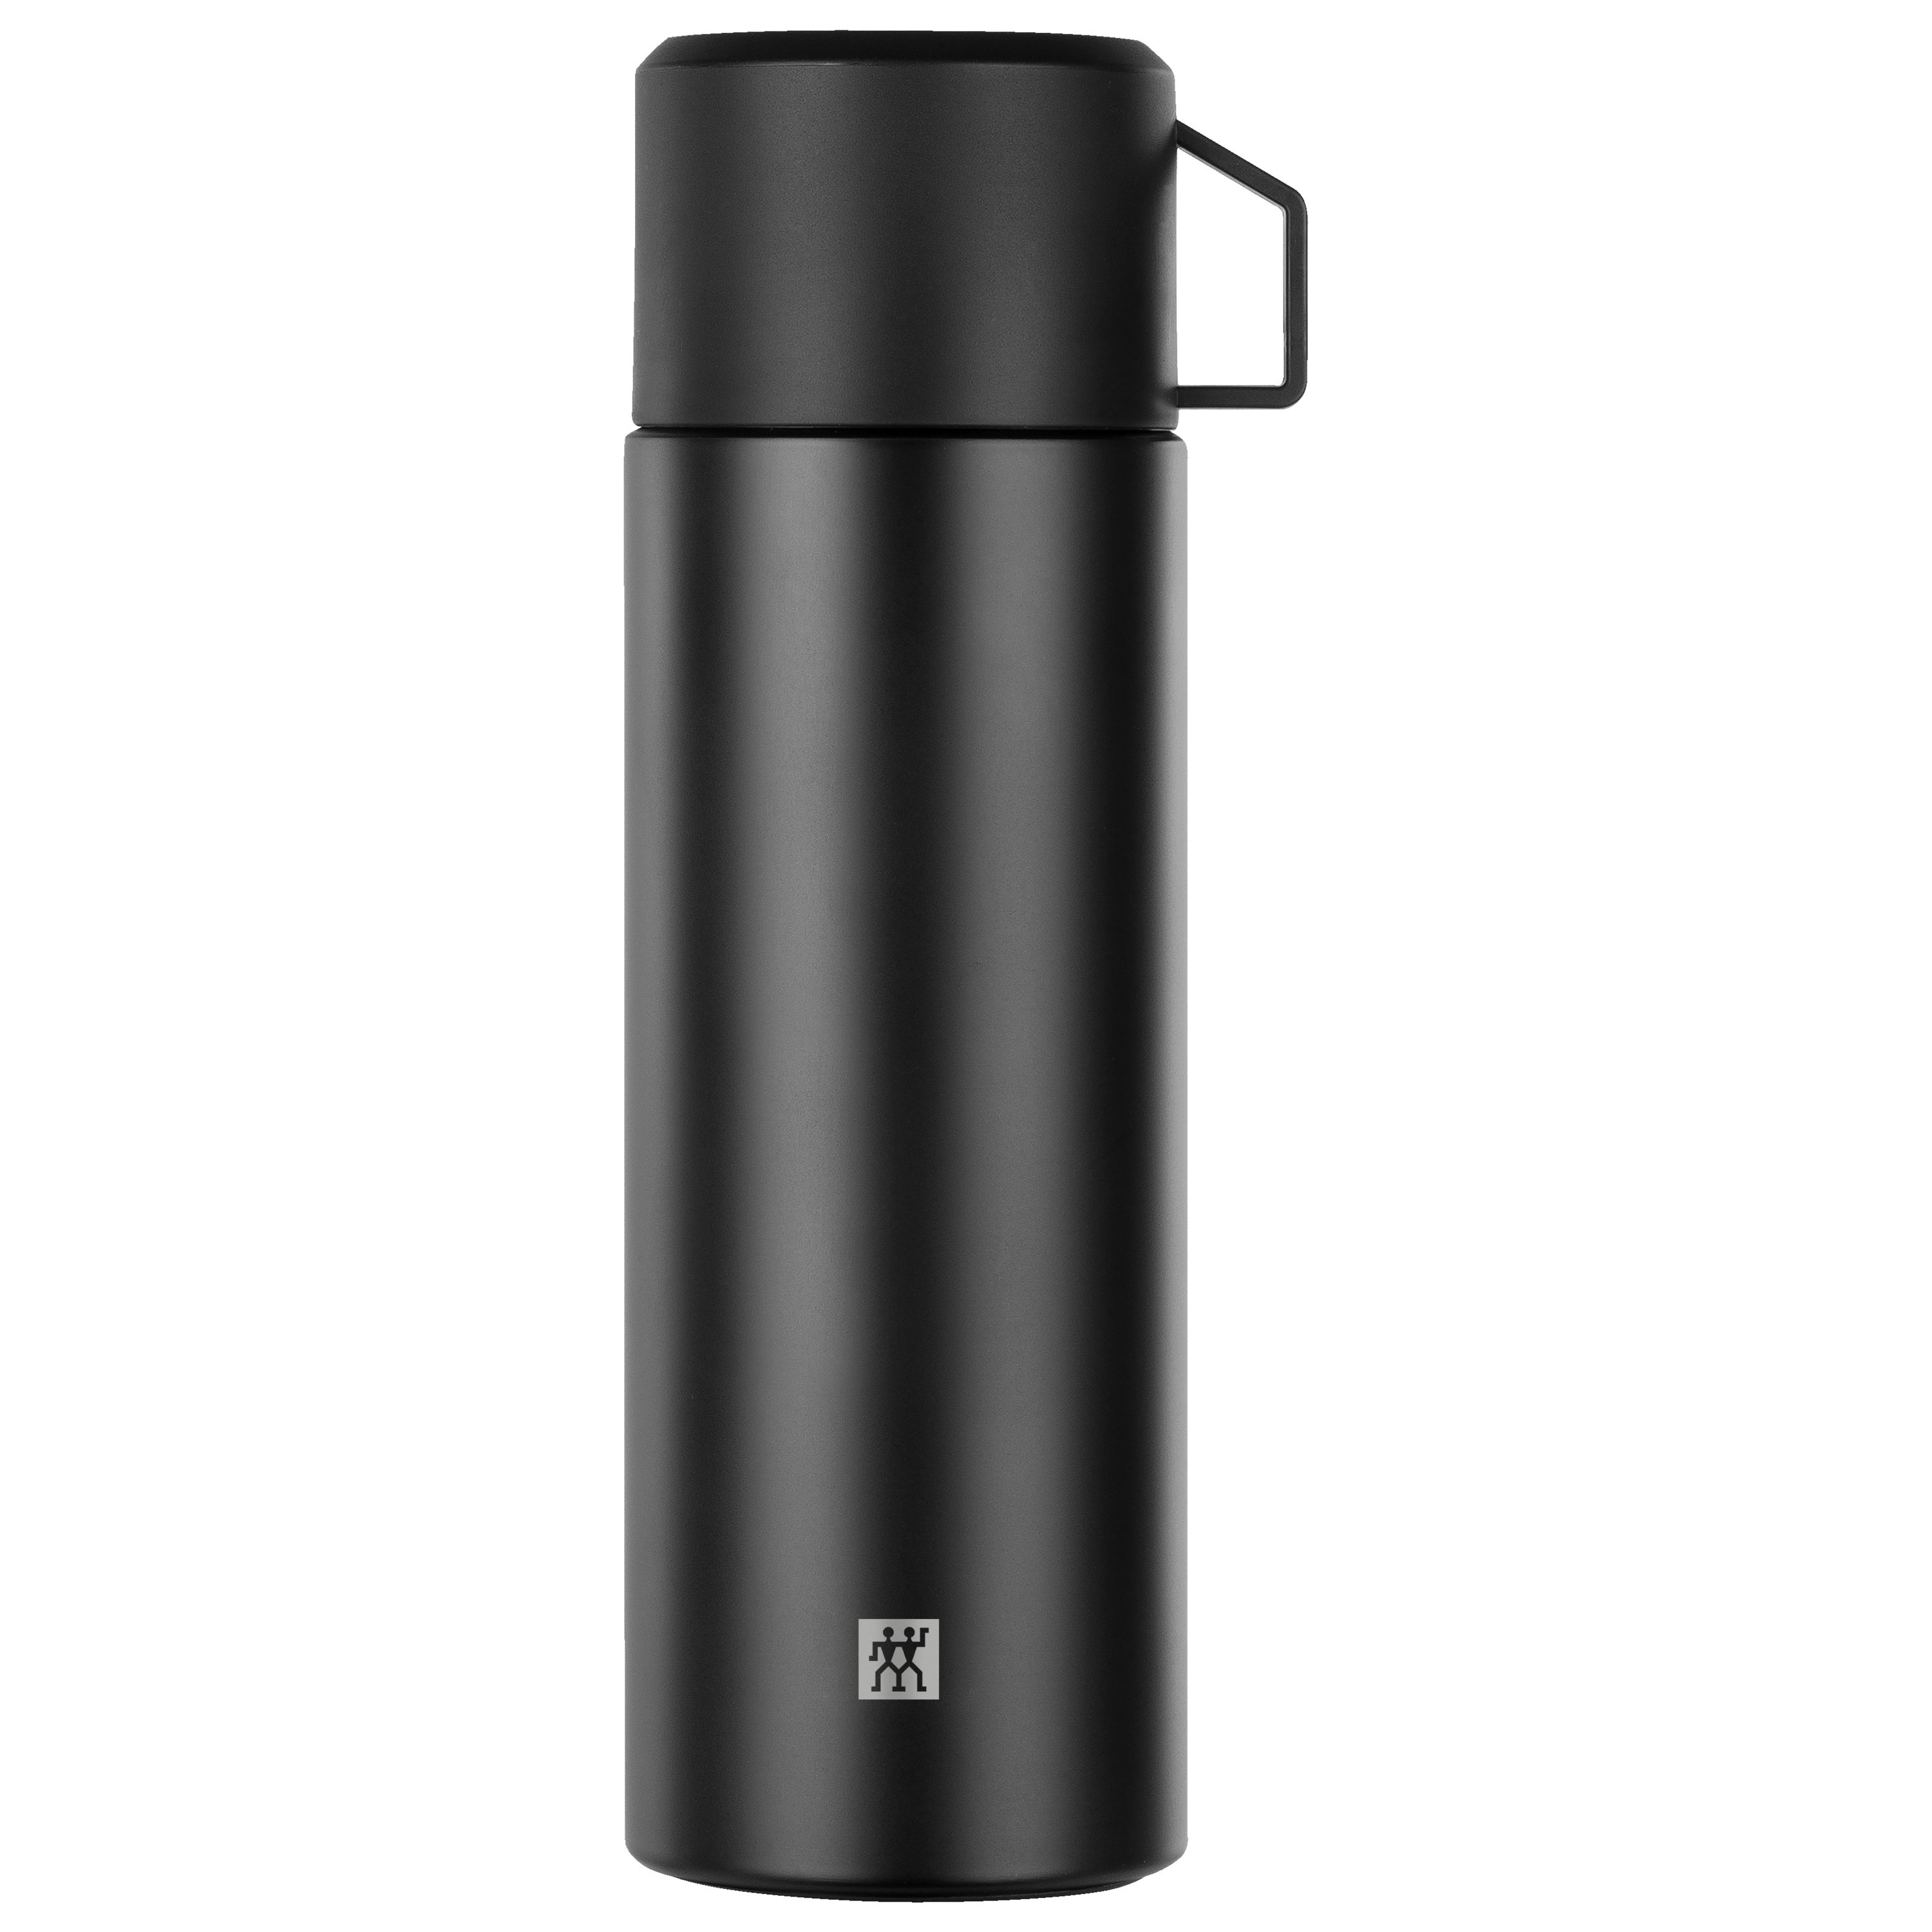 Zwilling Thermo Thermos Flask 1 L Black Official Zwilling Shop